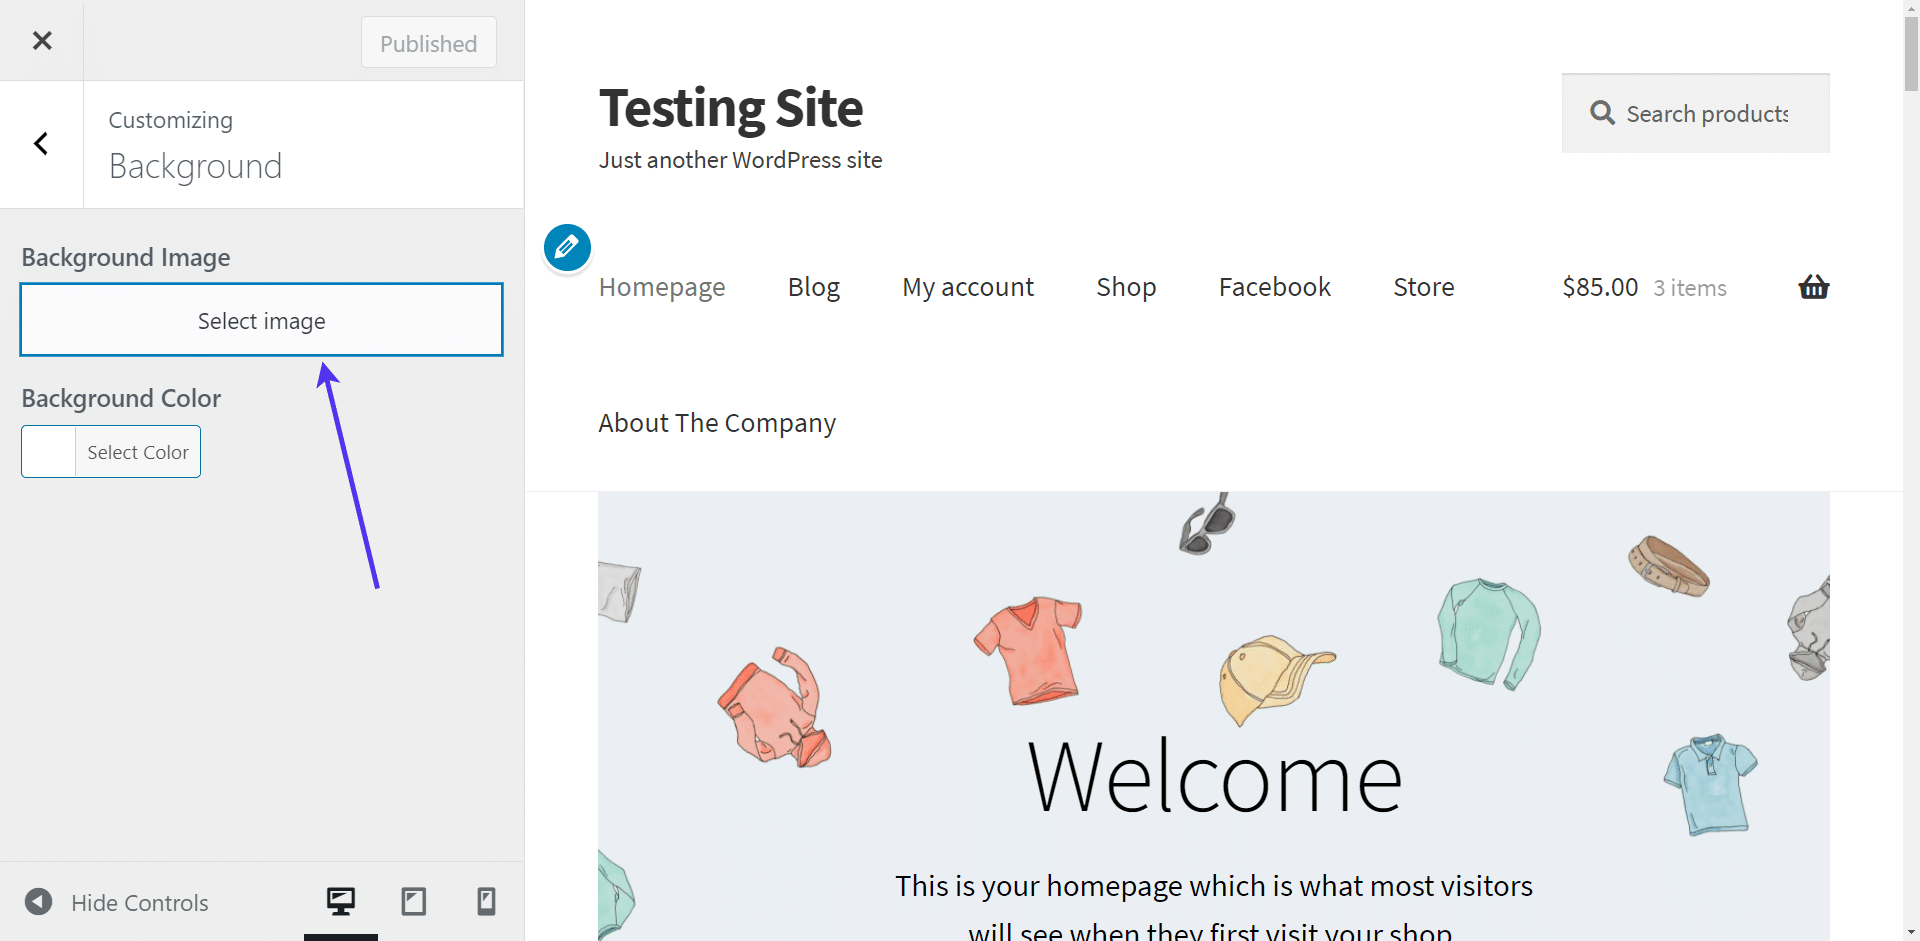 Click on the 'Select Image' button